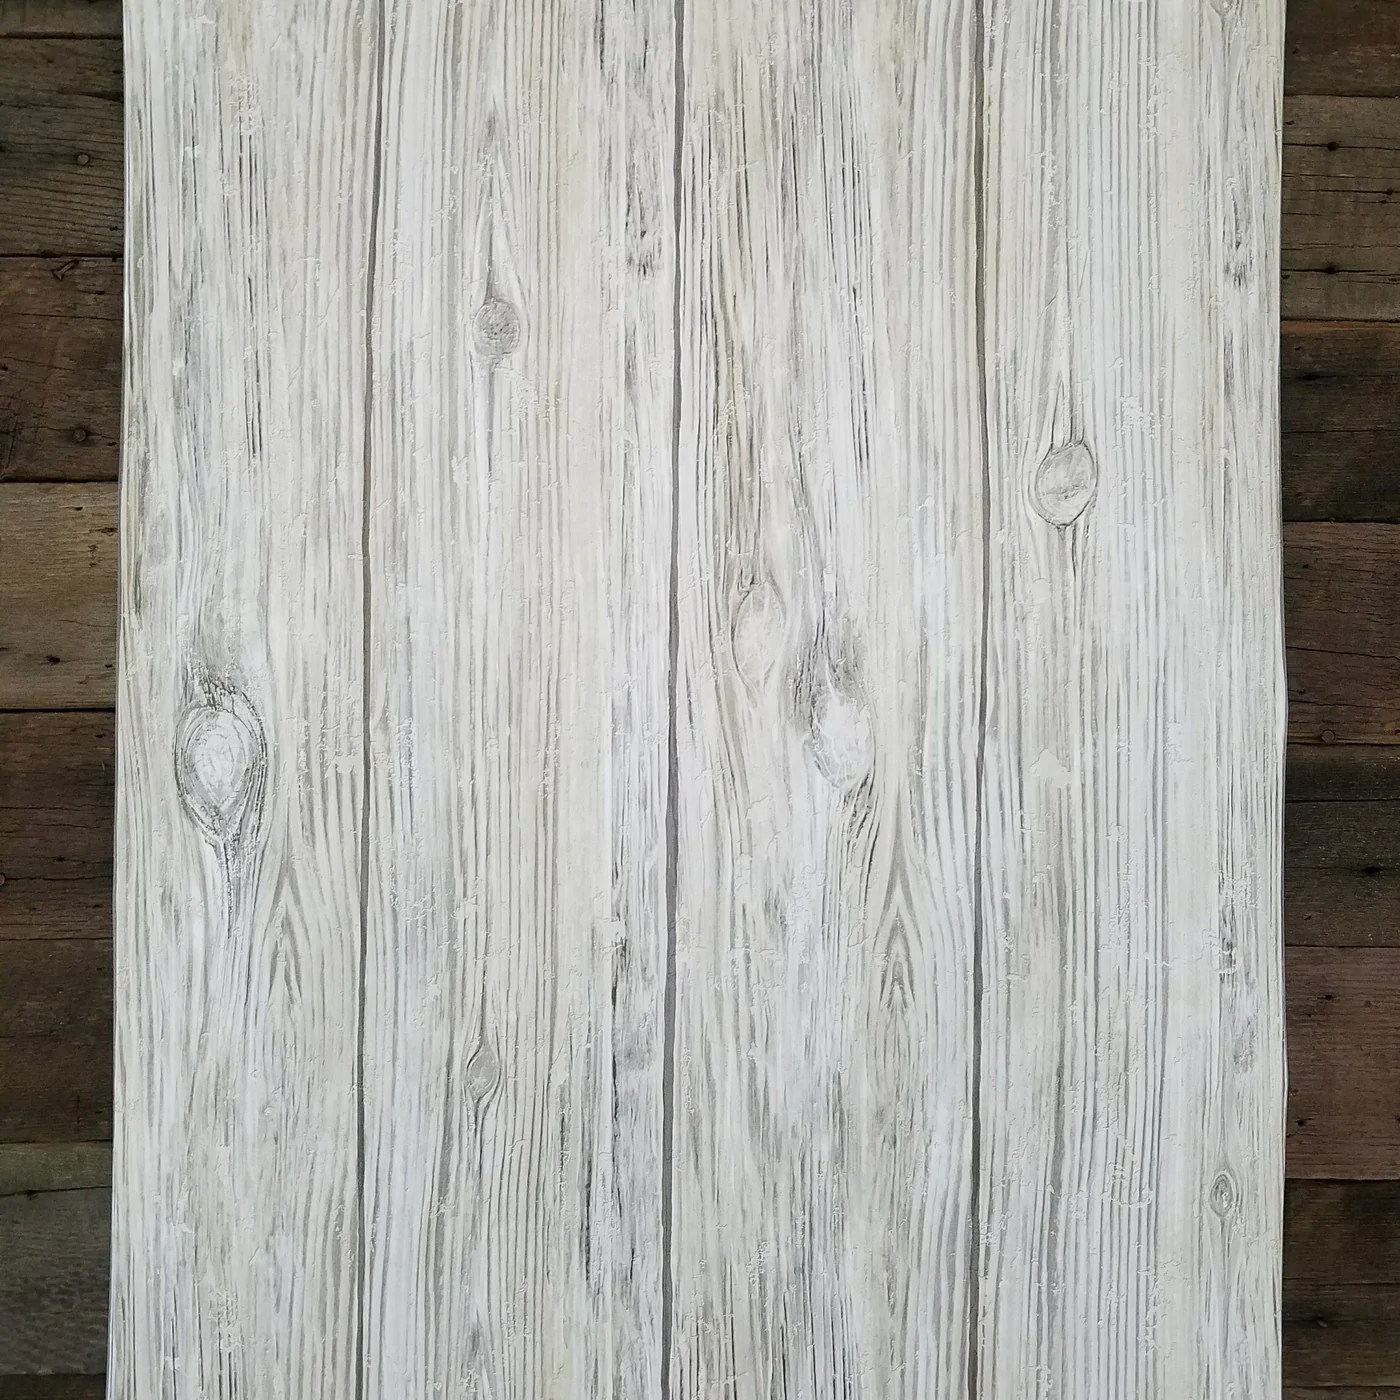 Gray Distressed Shiplap Rustic Wood Peel and Stick Wallpaper | RMK9086WP – D. Marie Interiors